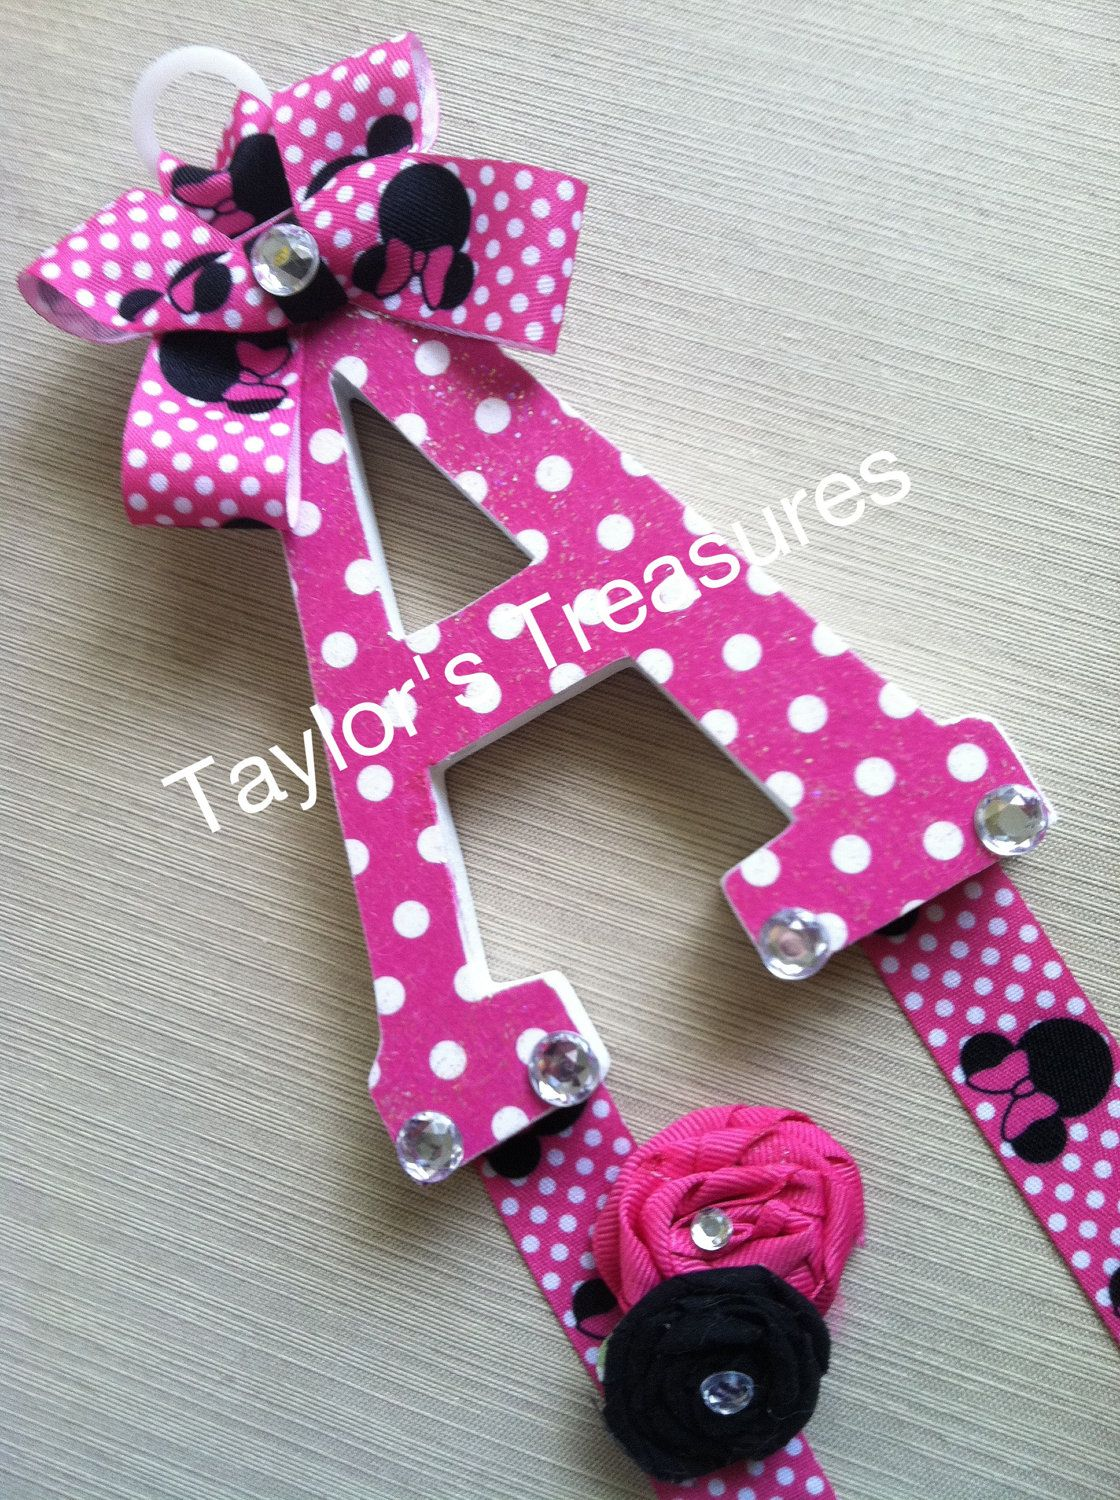 Taylors Treasures Patterned Letter Minnie Mouse Theme 10 99 Via Etsy